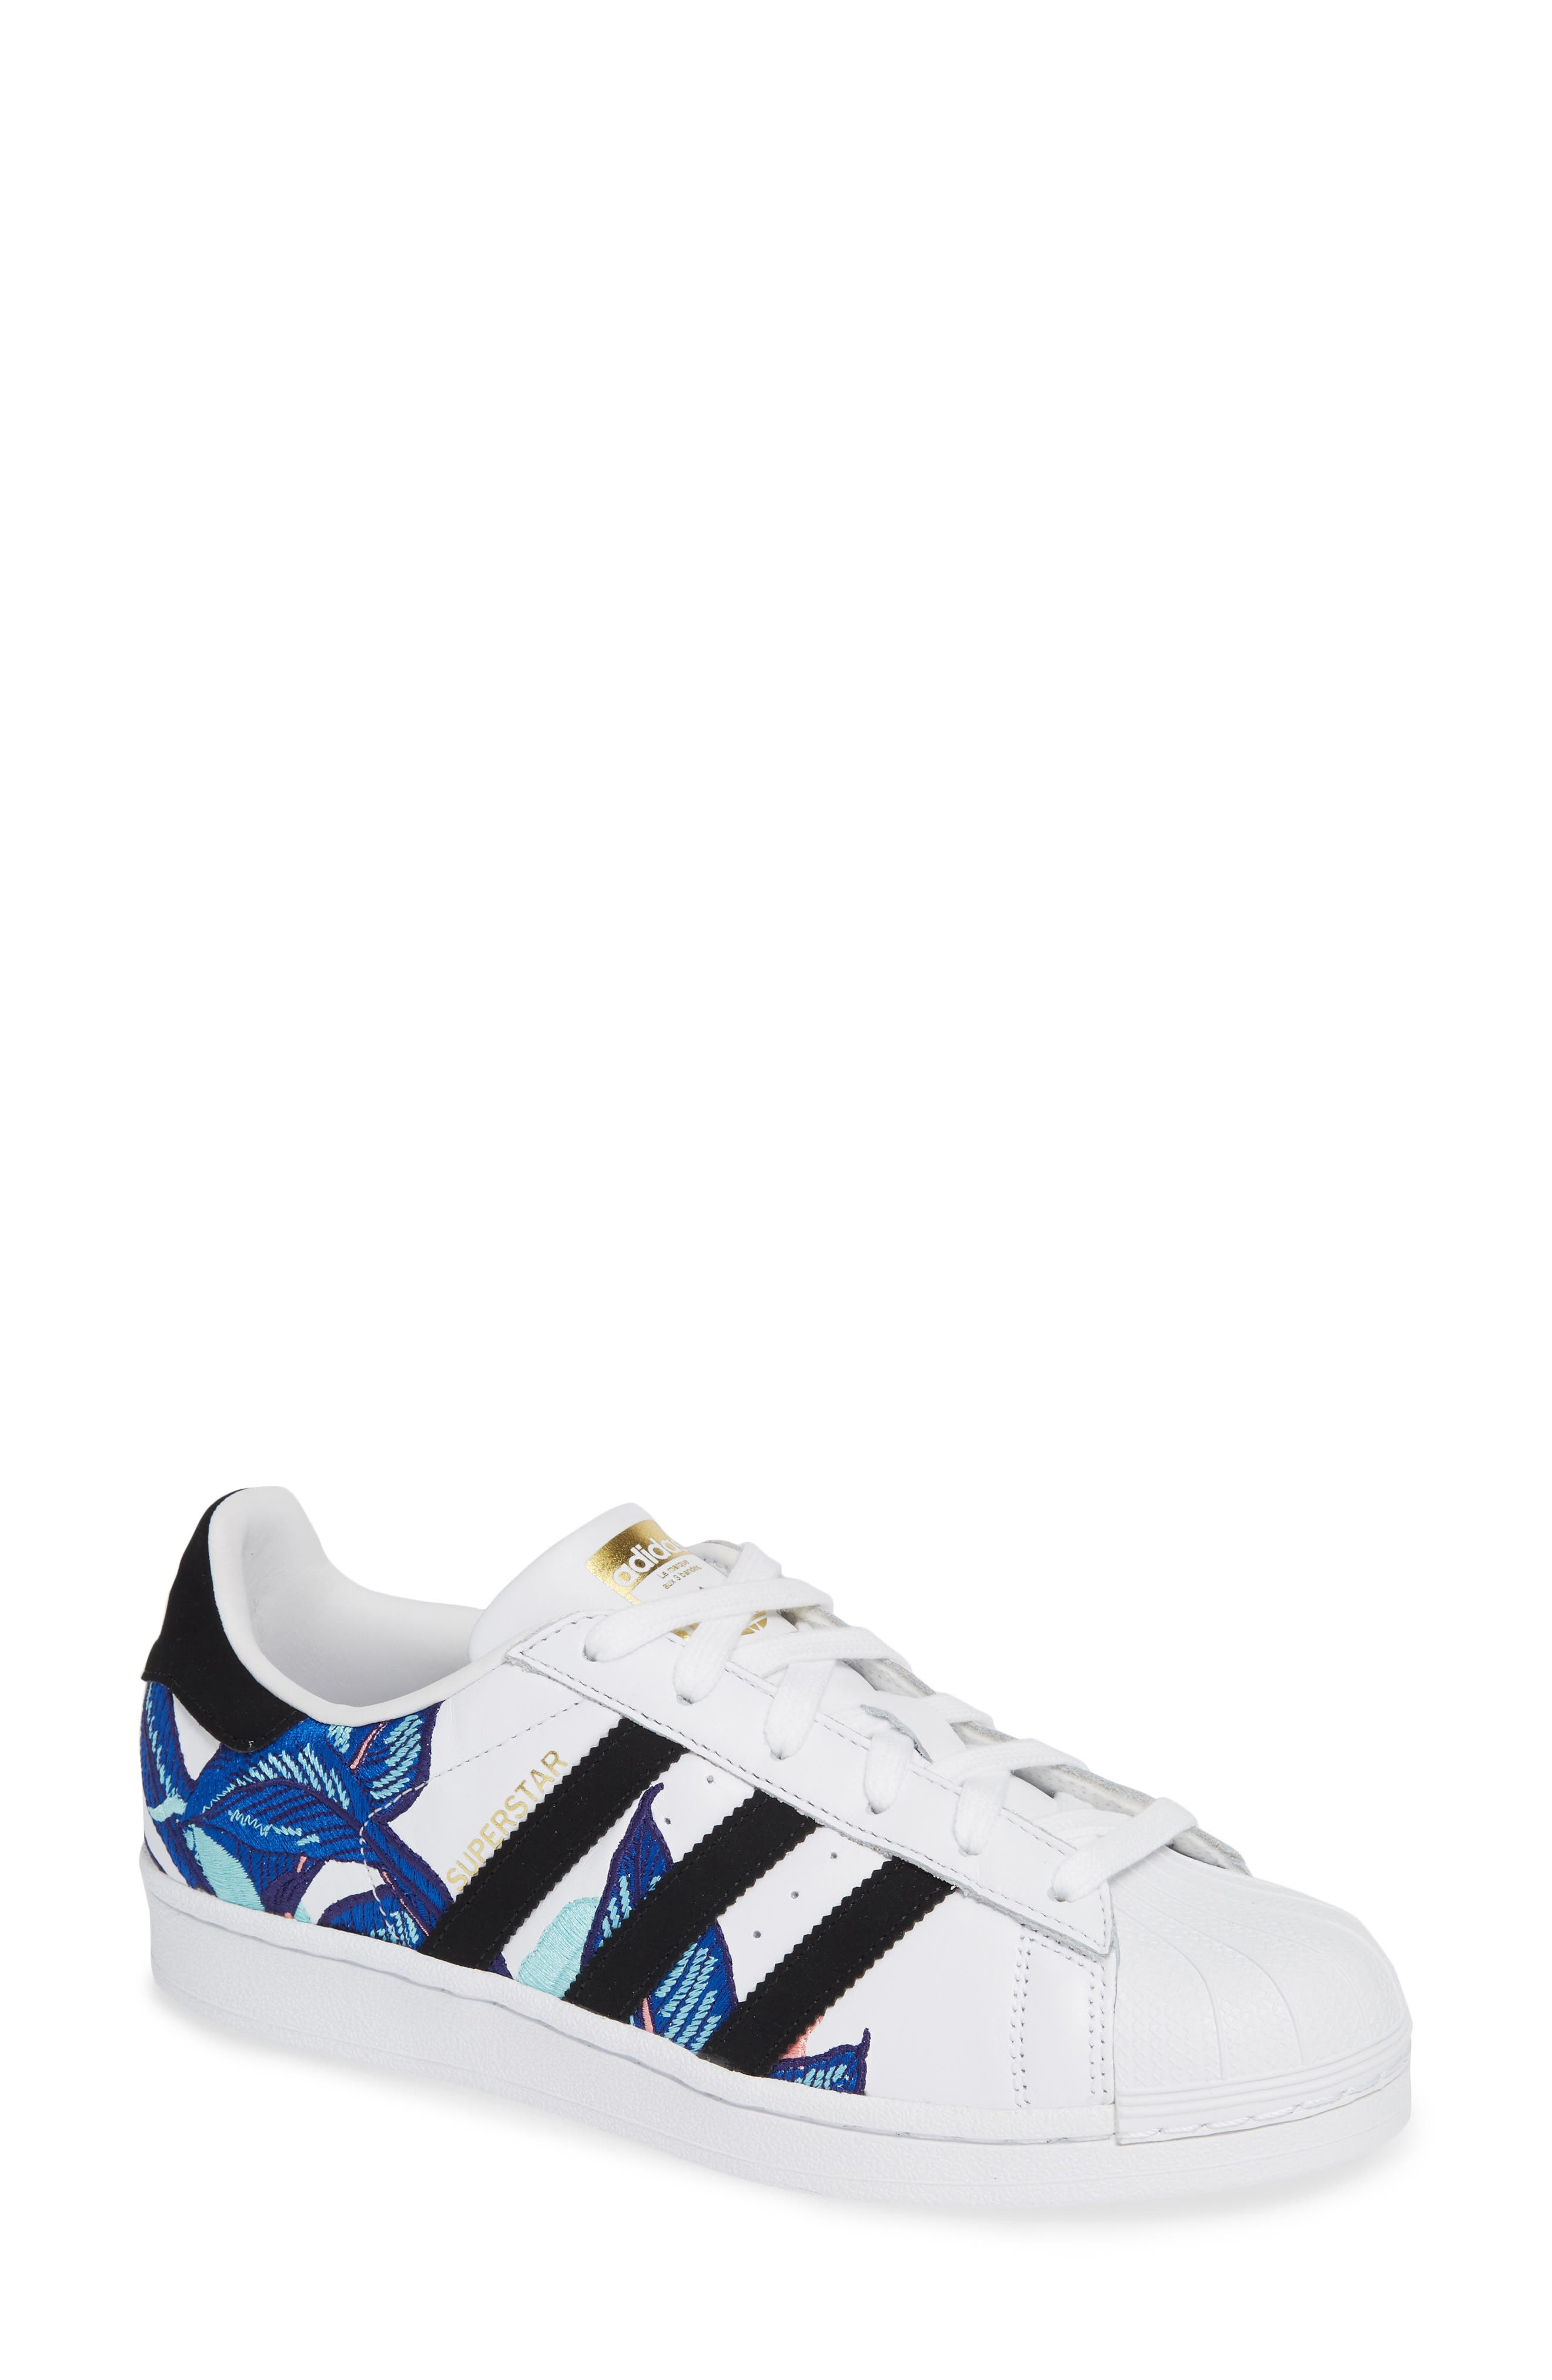 adidas superstar vita